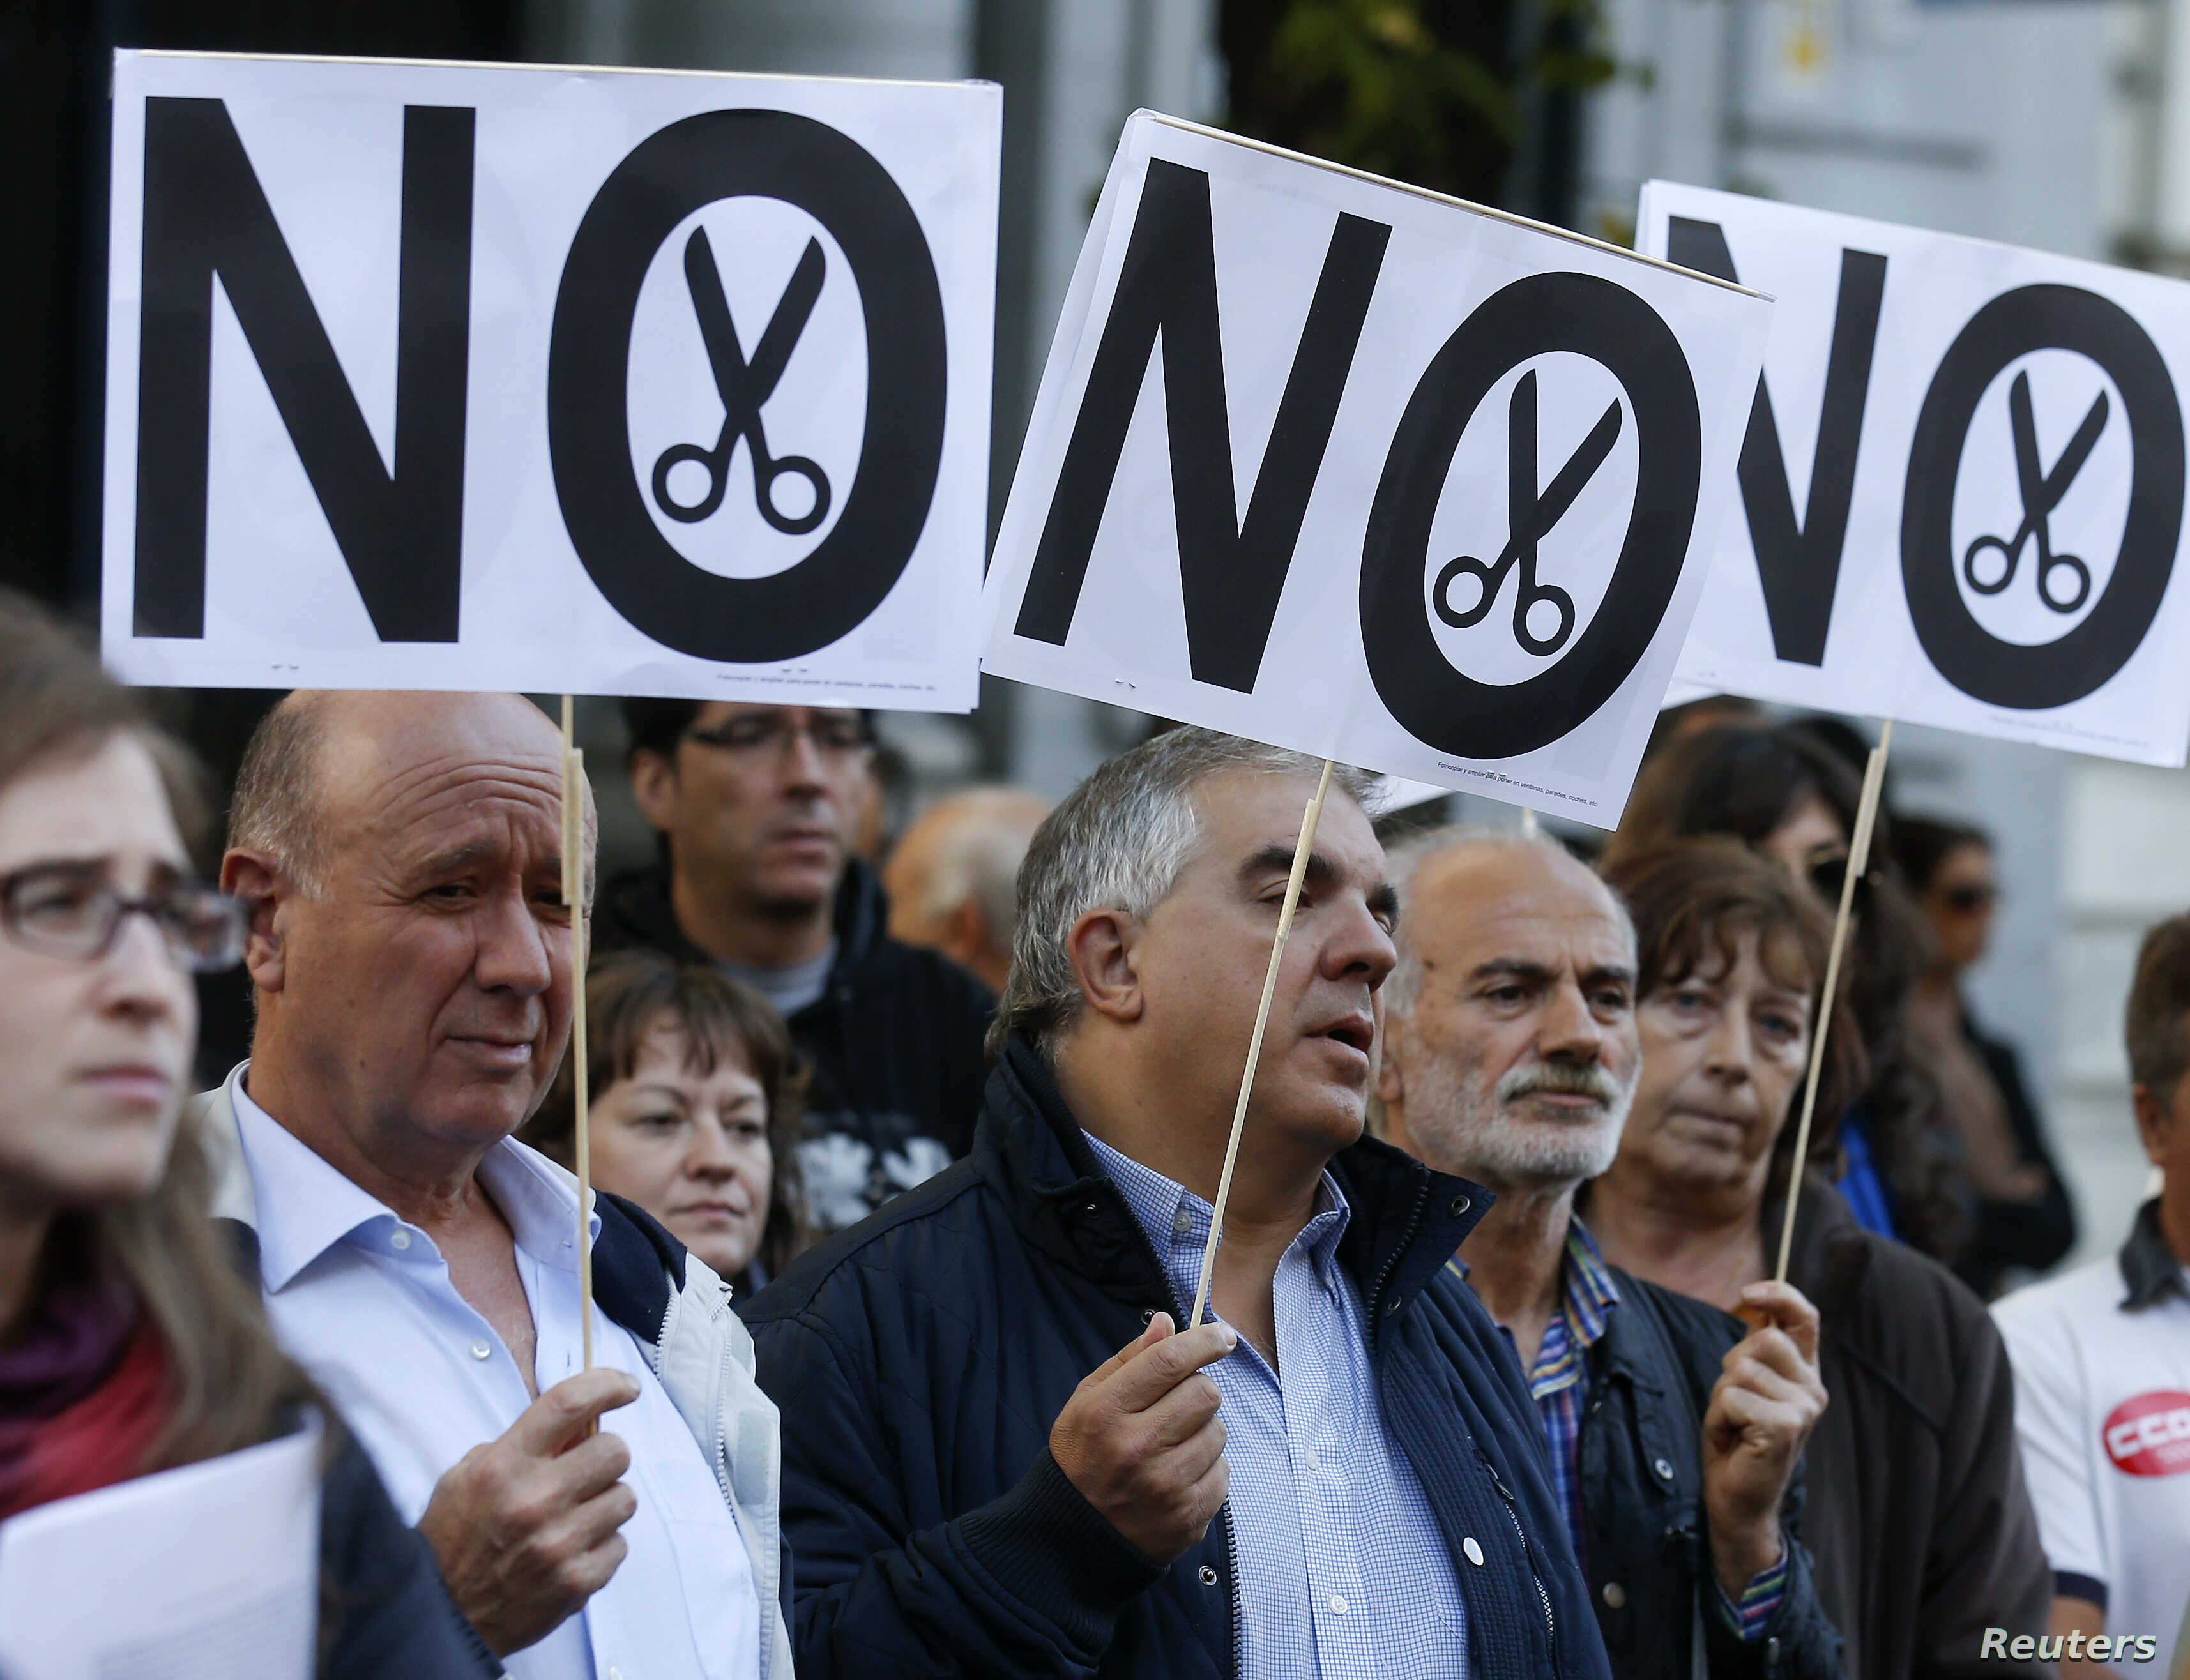 Demonstrators hold banners during a protest by trade unions against cuts in public universities in Madrid, October 23, 2012.